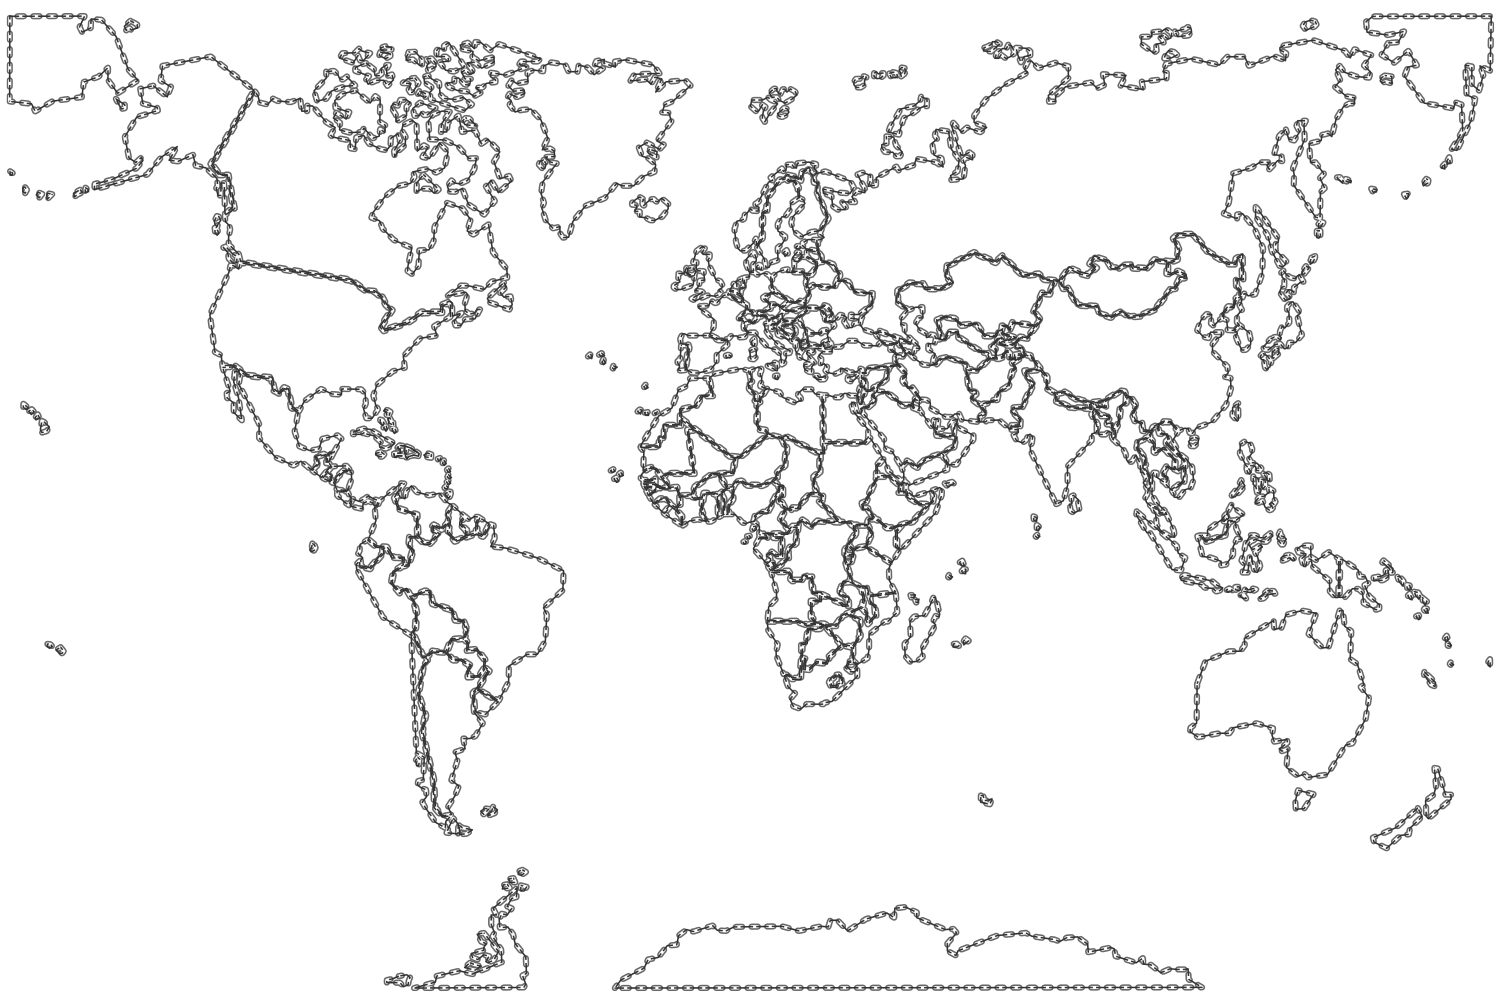 - Map Of The World With Countries Coloring Page - High Quality